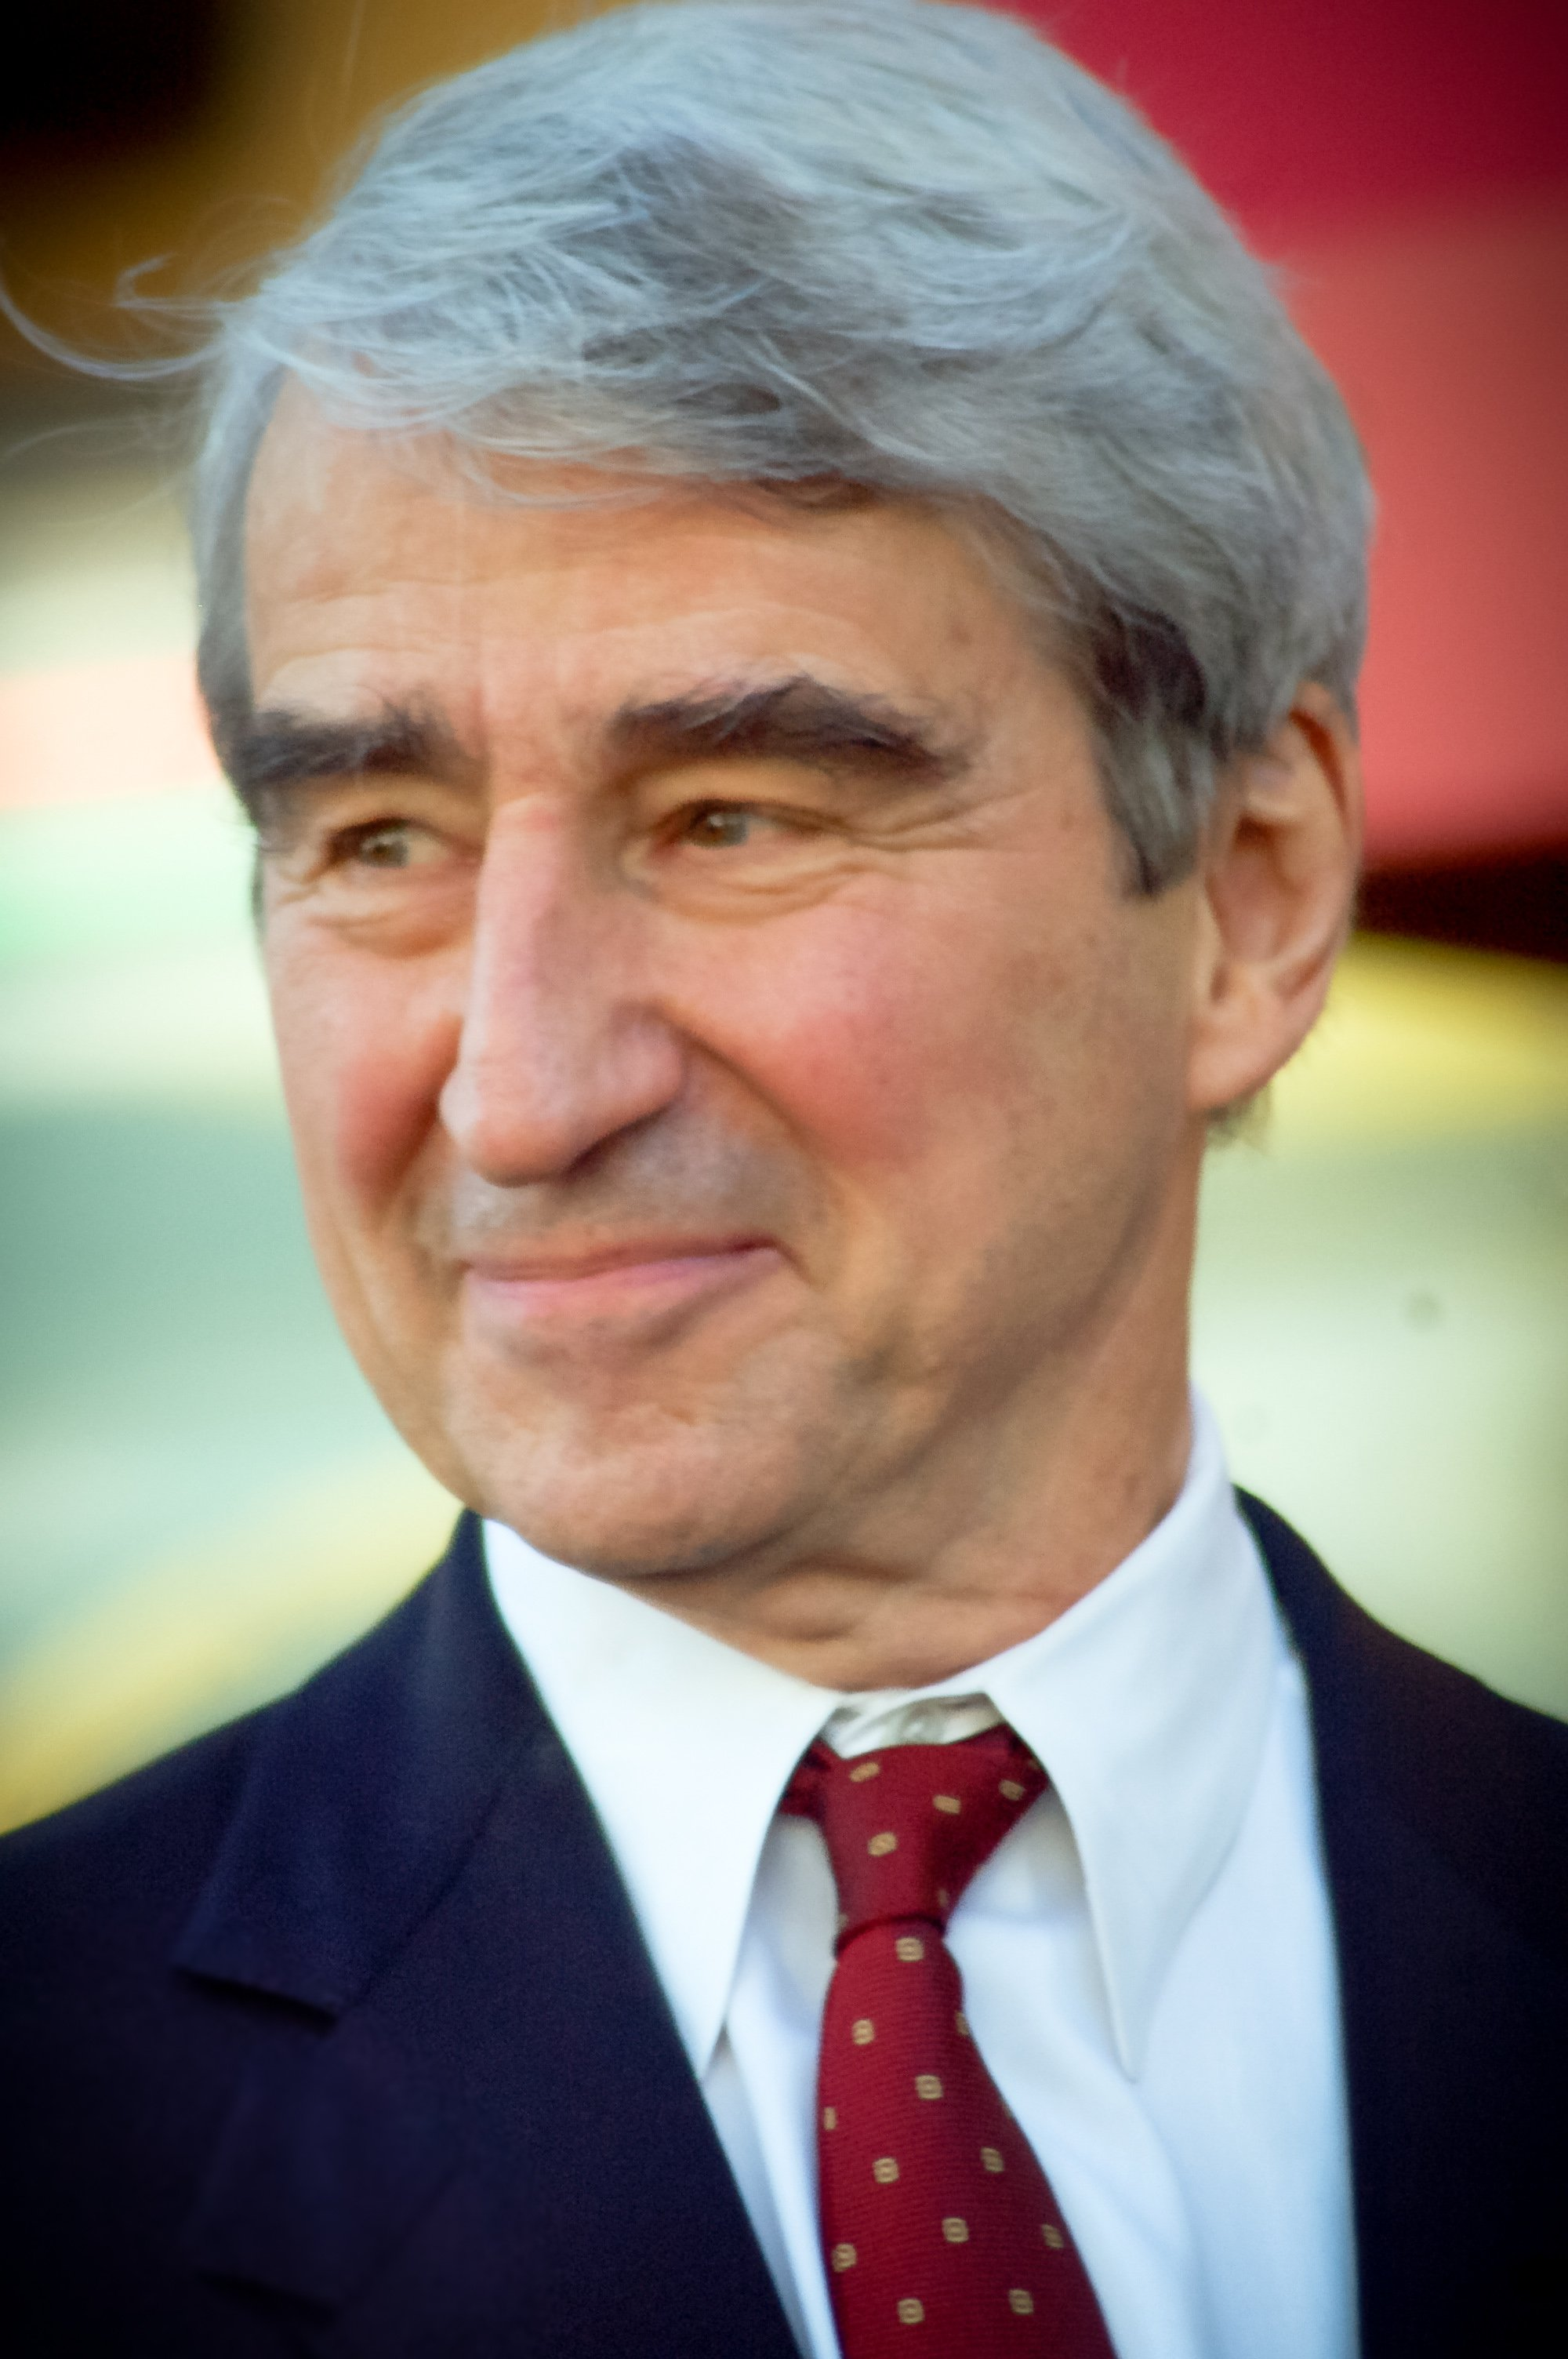 Sam Waterston at a ceremony in January 2010 to receive a star on the Hollywood Walk of Fame. | Source: Getty Images